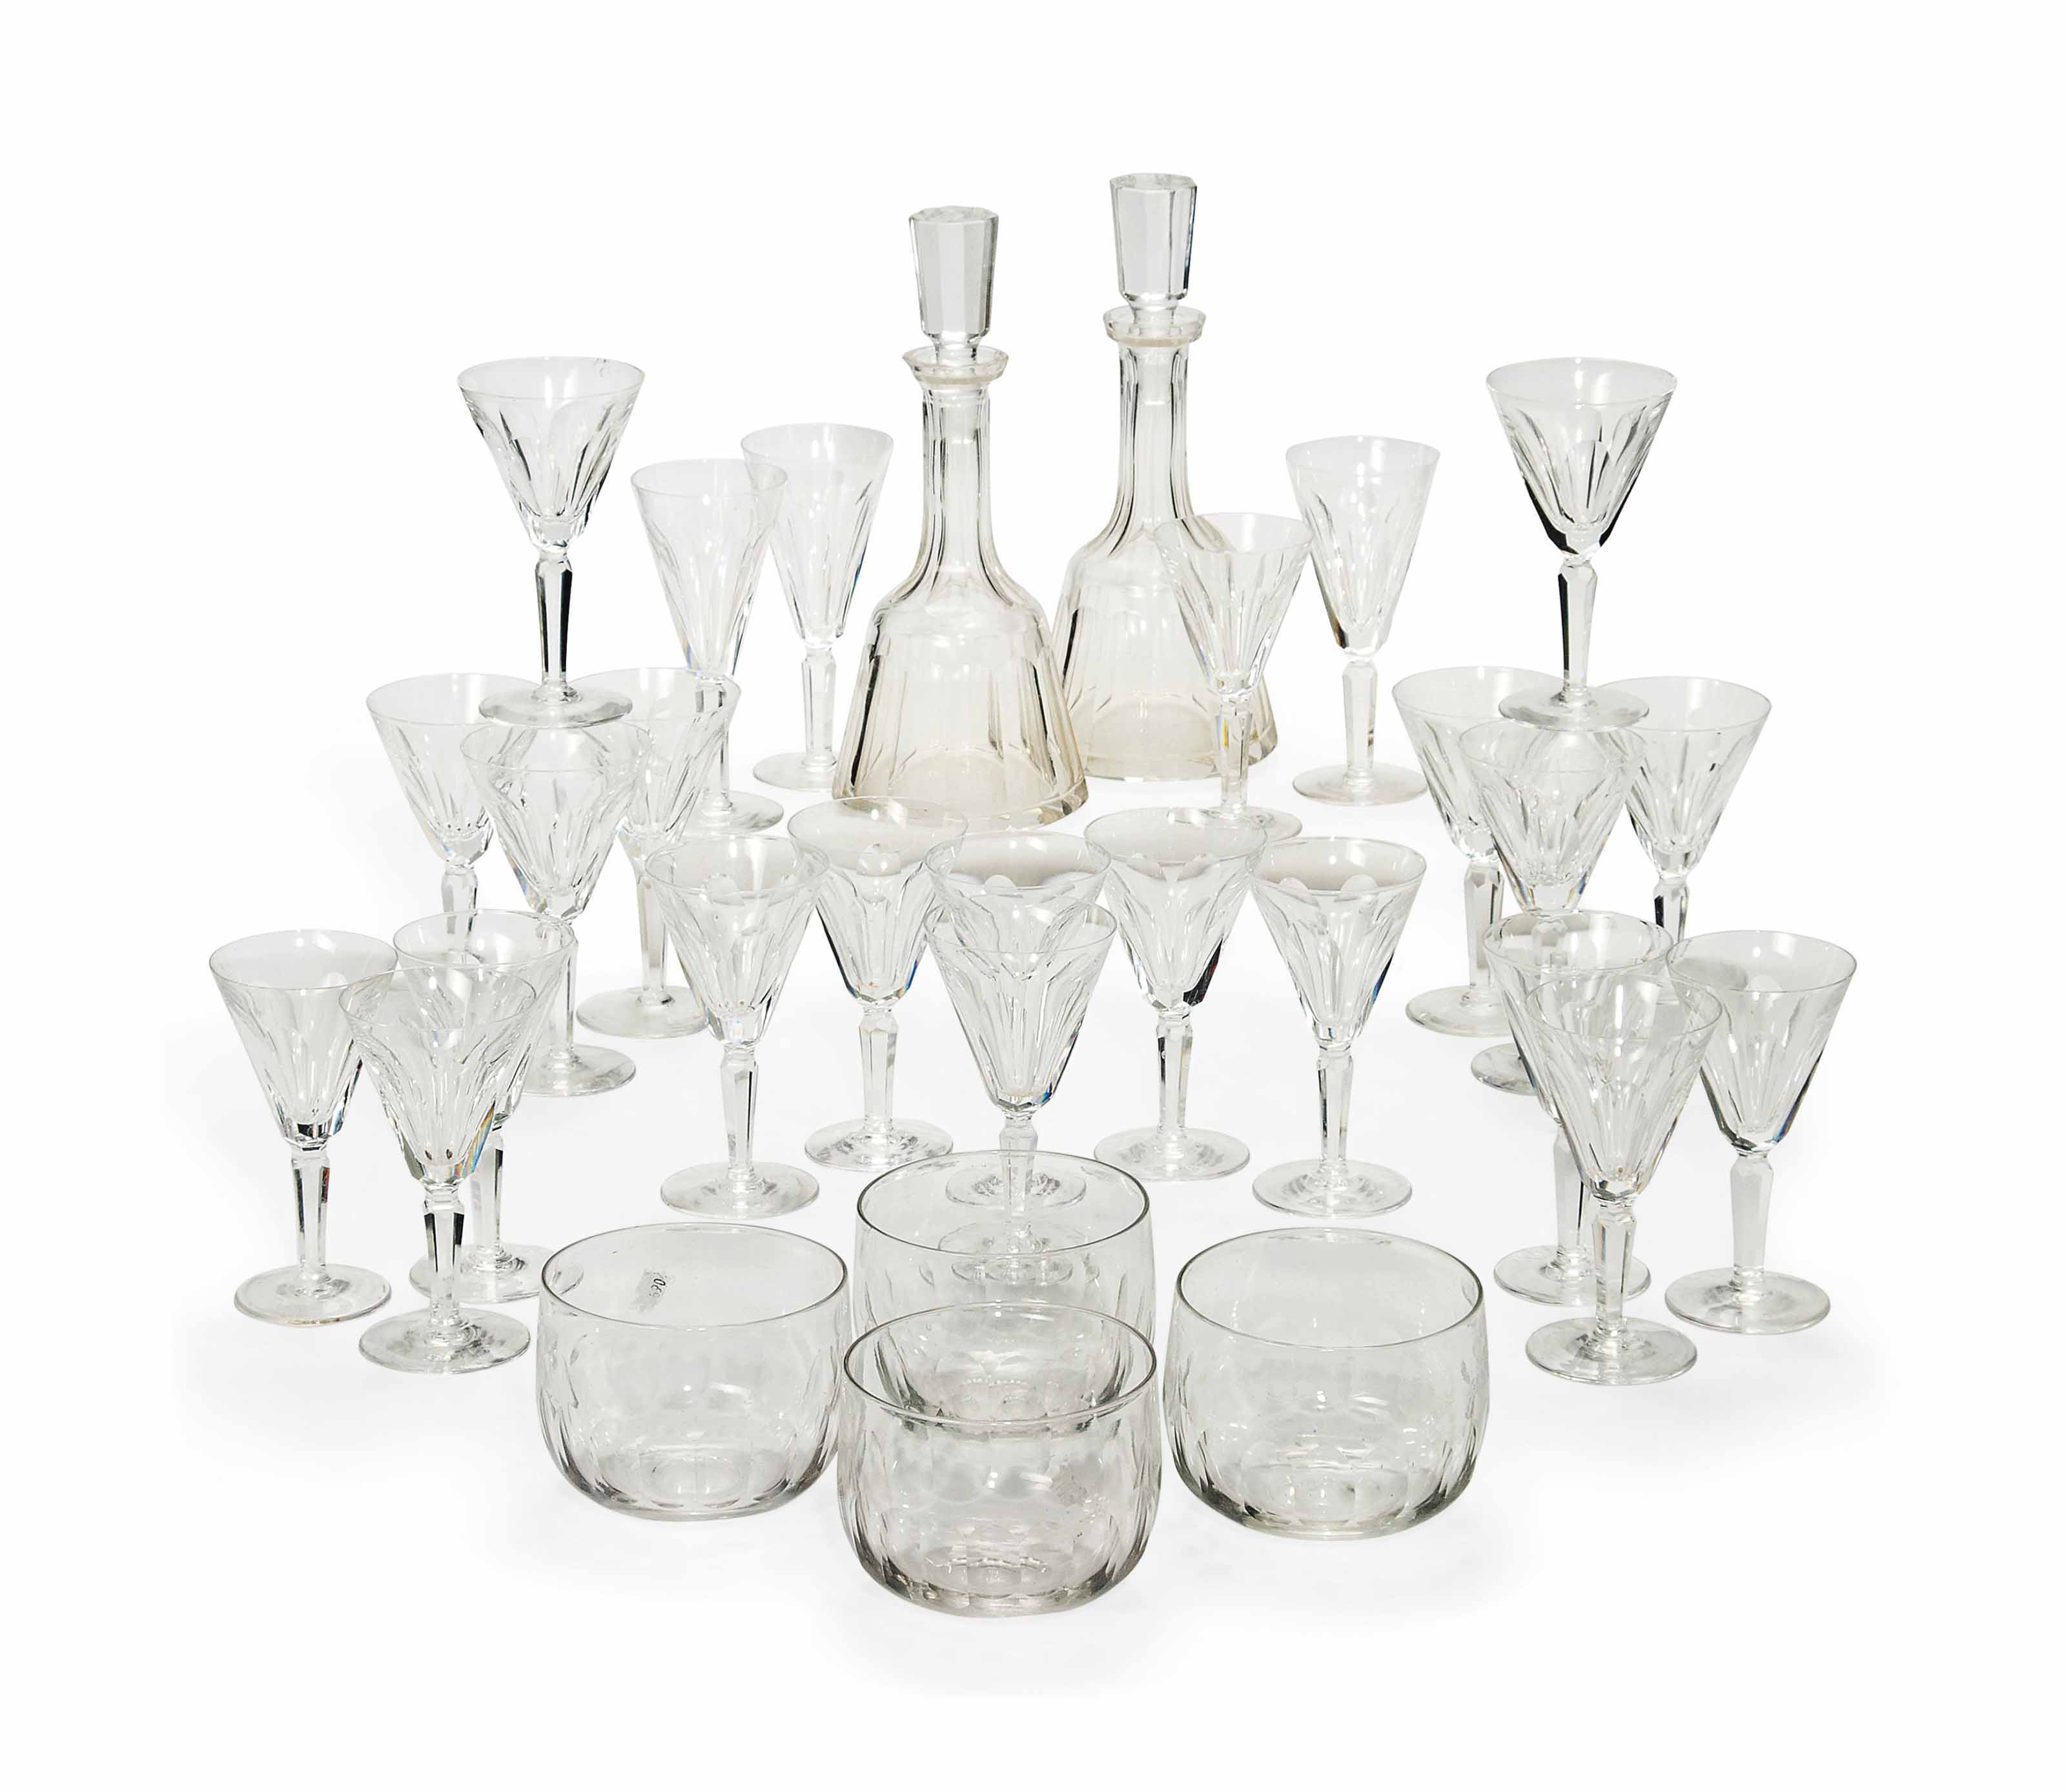 A PART SUITE OF WATERFORD 'SHEILA' PATTERN GLASSWARE